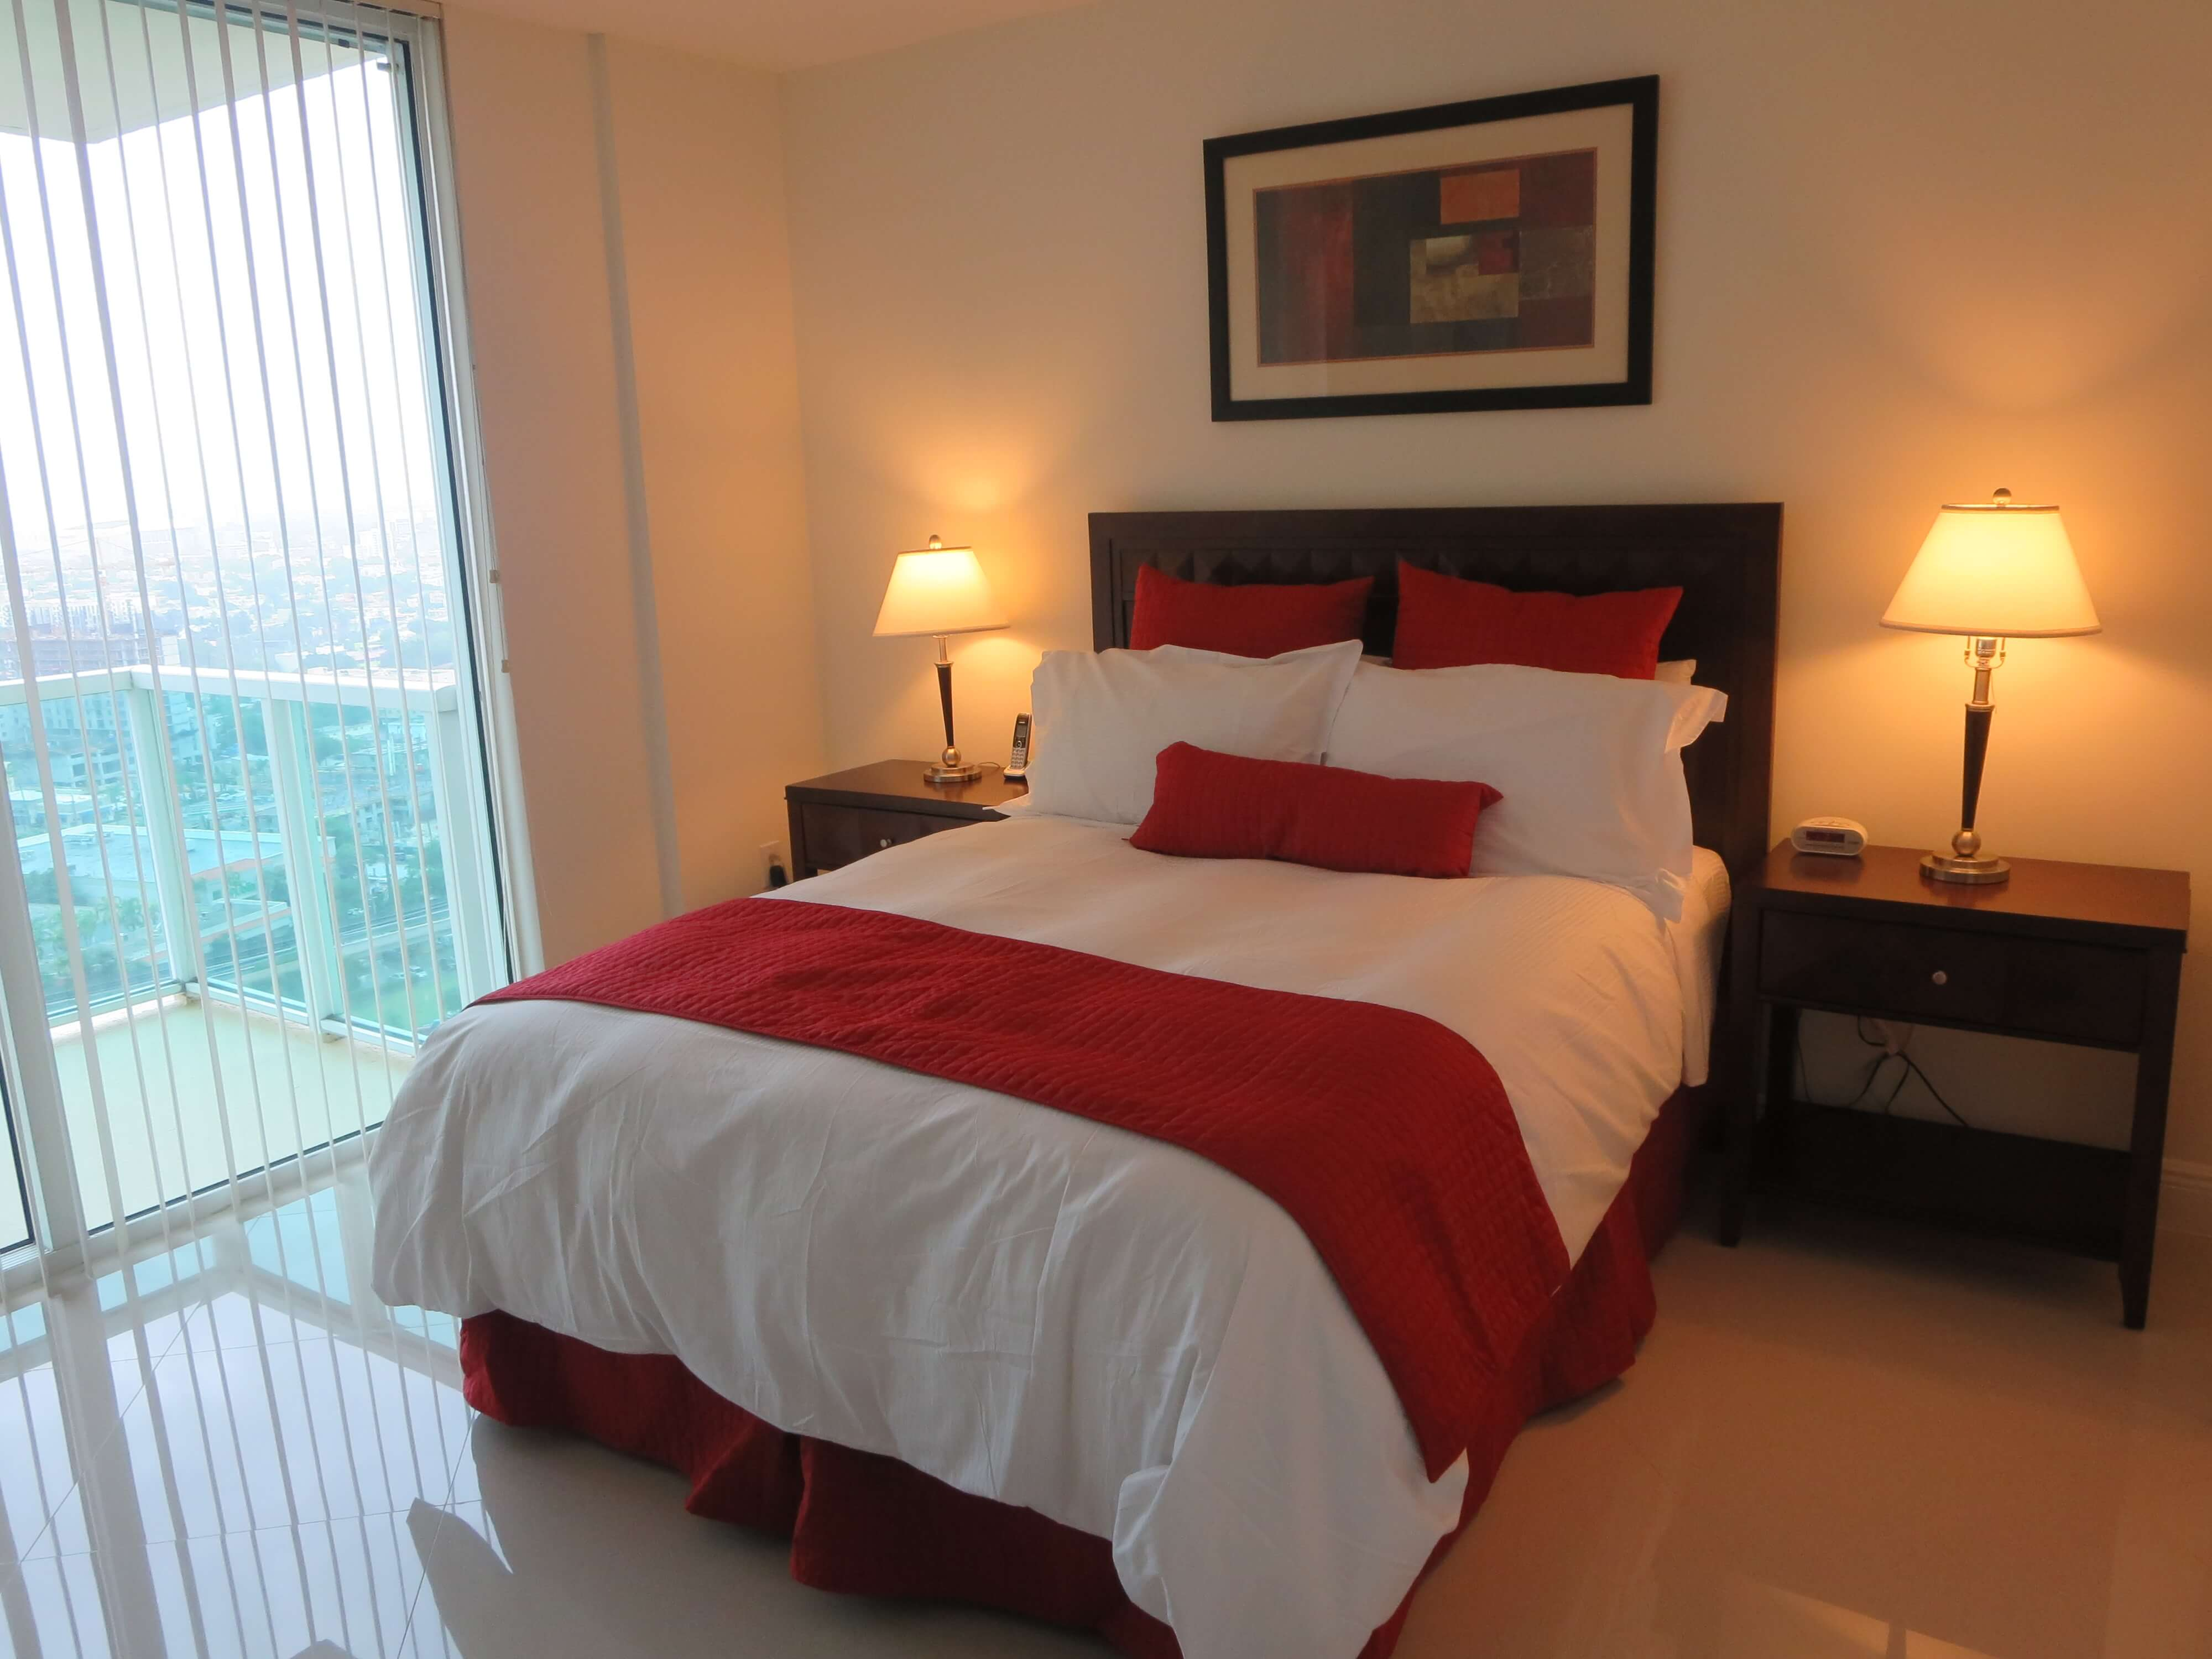 furnished 1 bedroom apartment for rent in miami lakes miami area